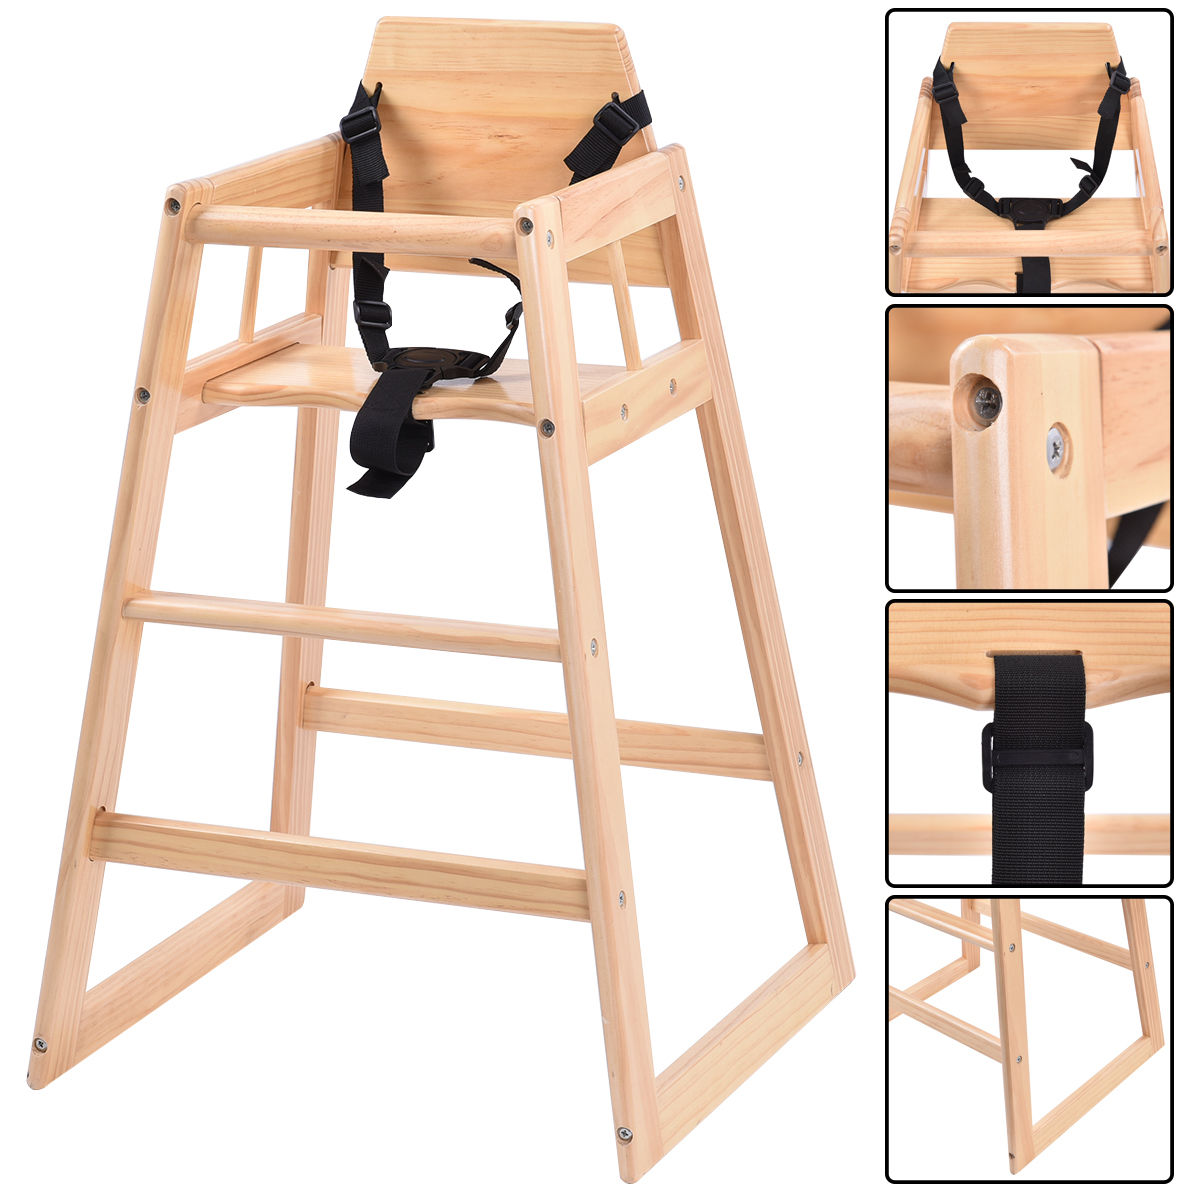 Costway Baby High Chair Wooden Stool Infant Feeding Children Toddler Restaurant Natural by Costway